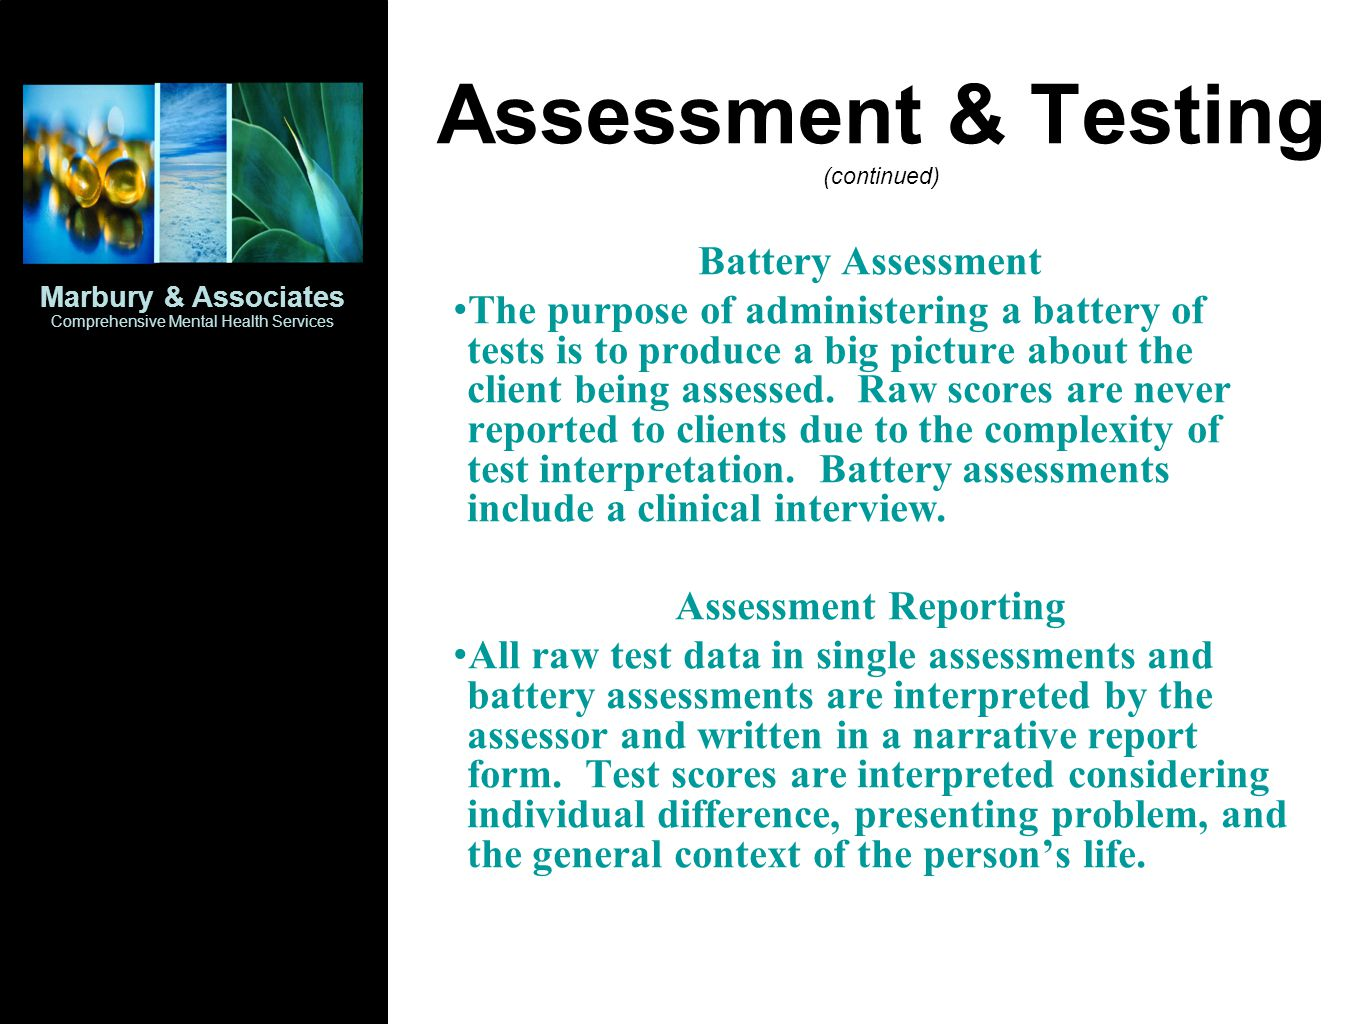 Assessment & Testing (continued) Battery Assessment The purpose of administering a battery of tests is to produce a big picture about the client being assessed.